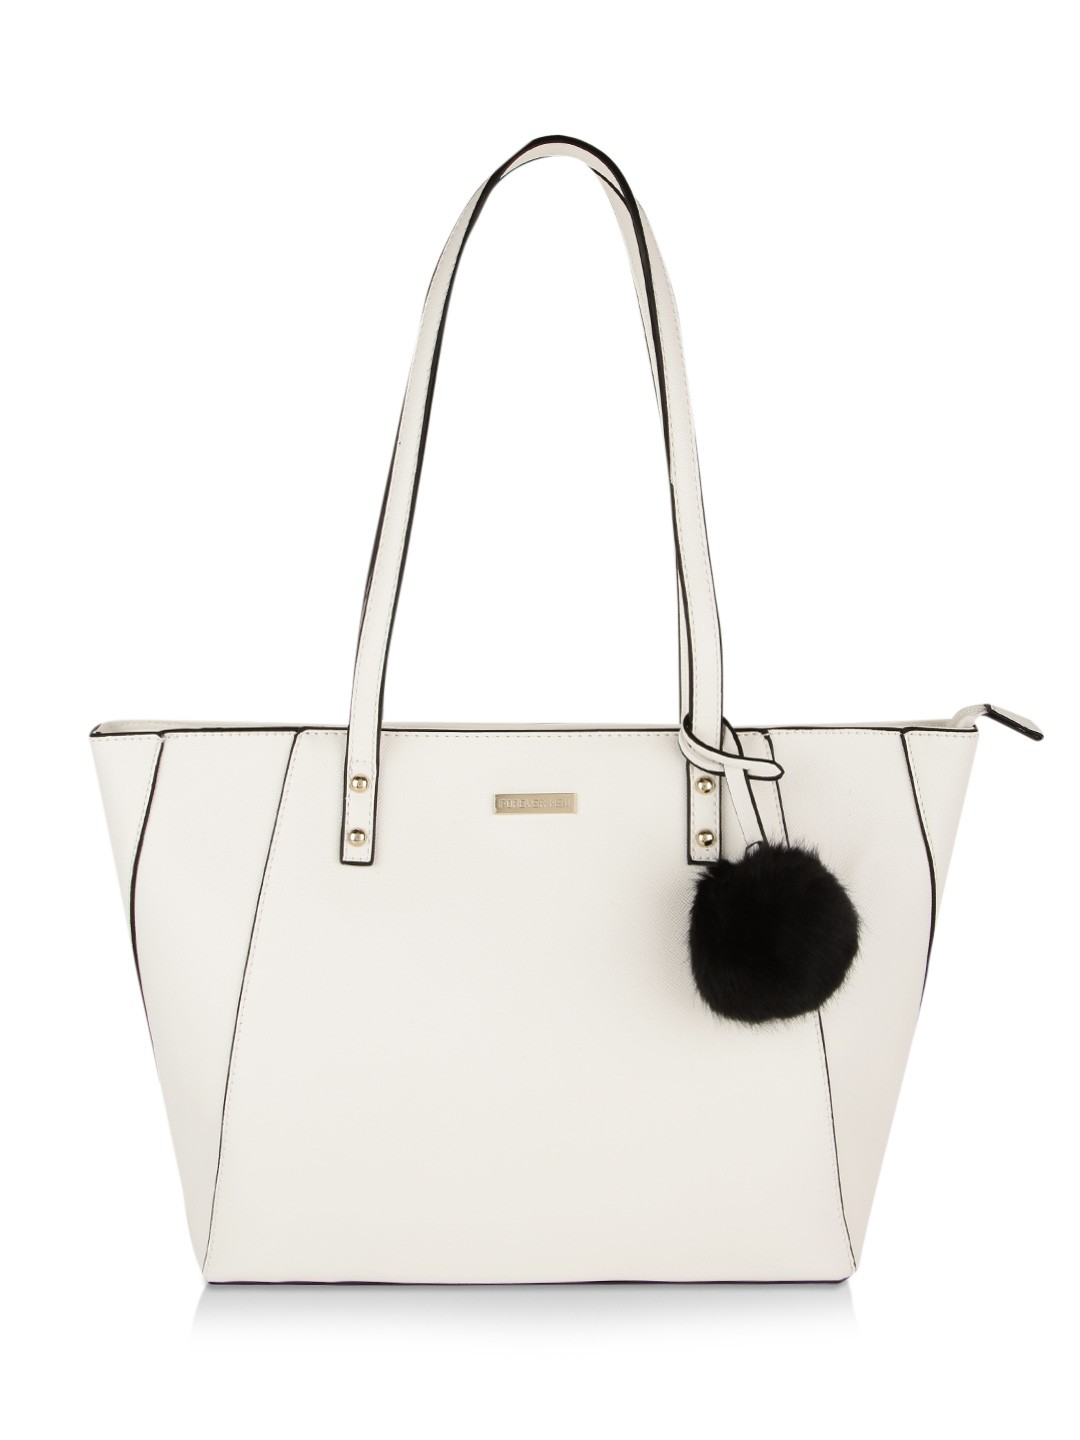 Buy FOREVER NEW Tote Bag For Women - Women's White Tote Bags ...